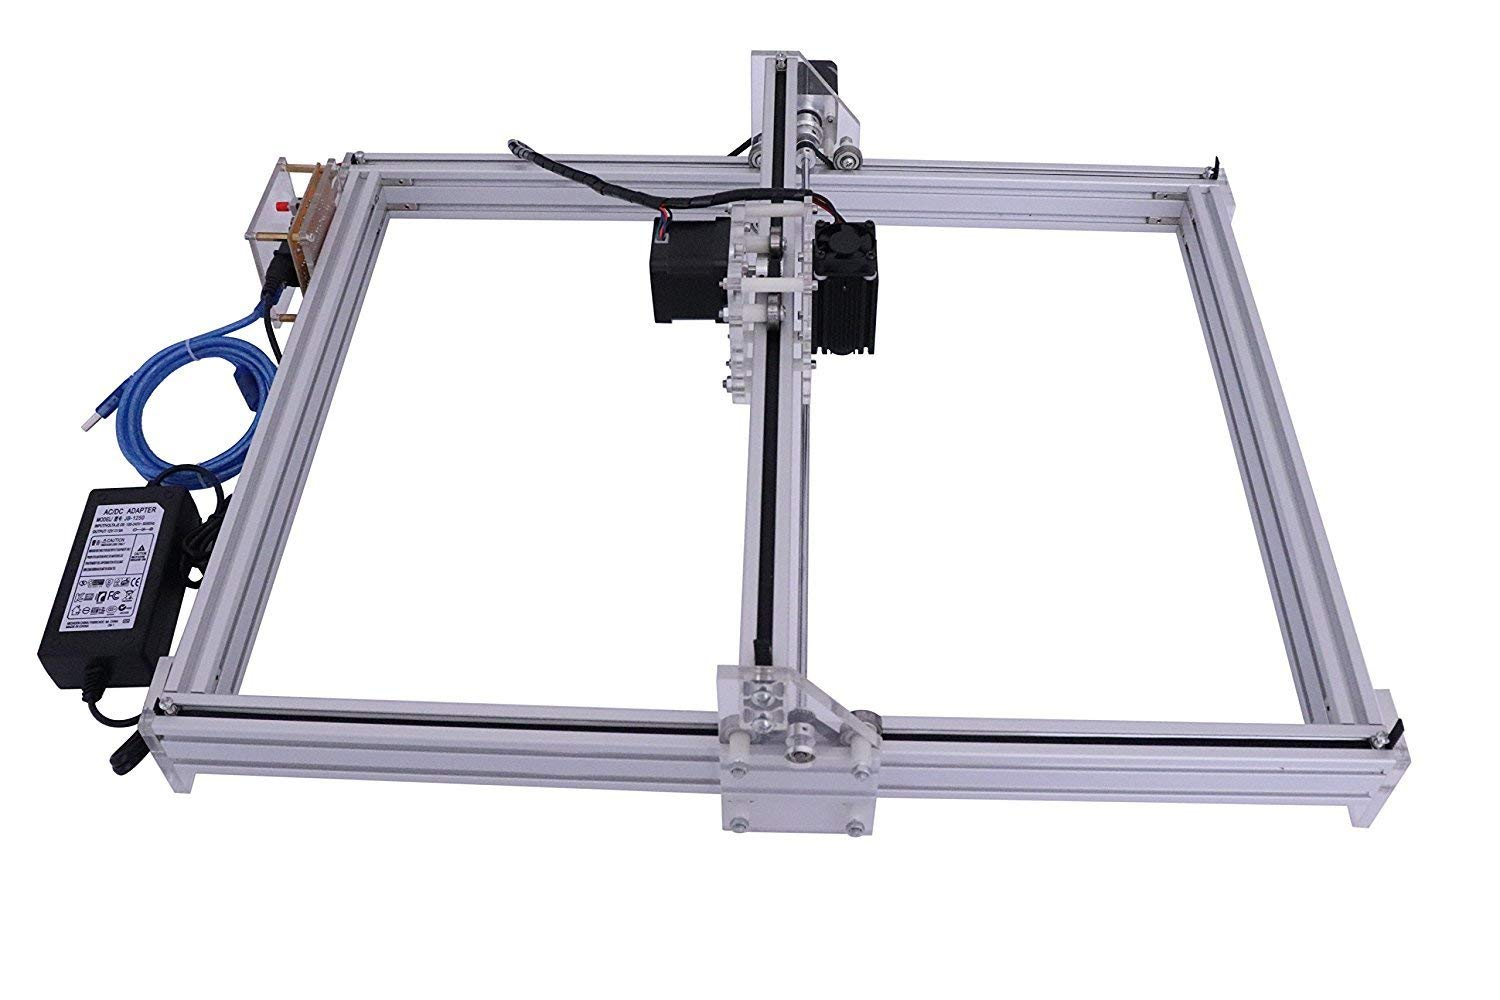 DIY CNC Laser Engraver Kits 4050 GRBL Control Wood Carving Engraving Machine (Working Area 40x50cm, 2 Axis (2500MW)